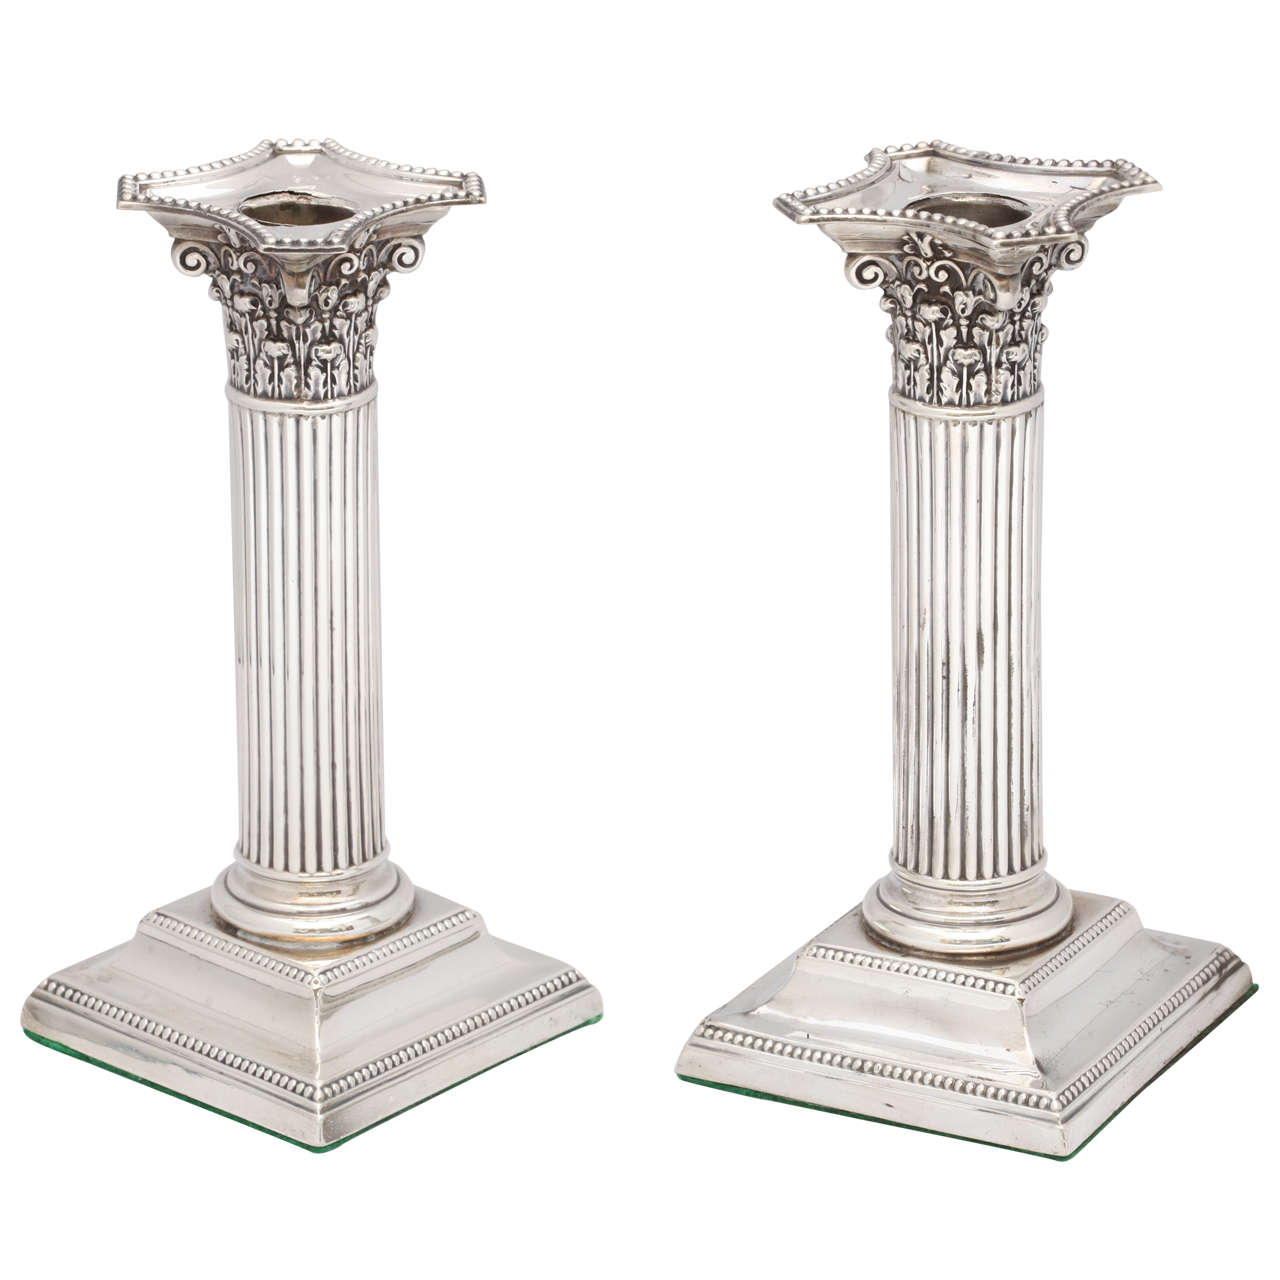 Pair of Neoclassical Sterling Silver Corinthian Column-Form Candlesticks